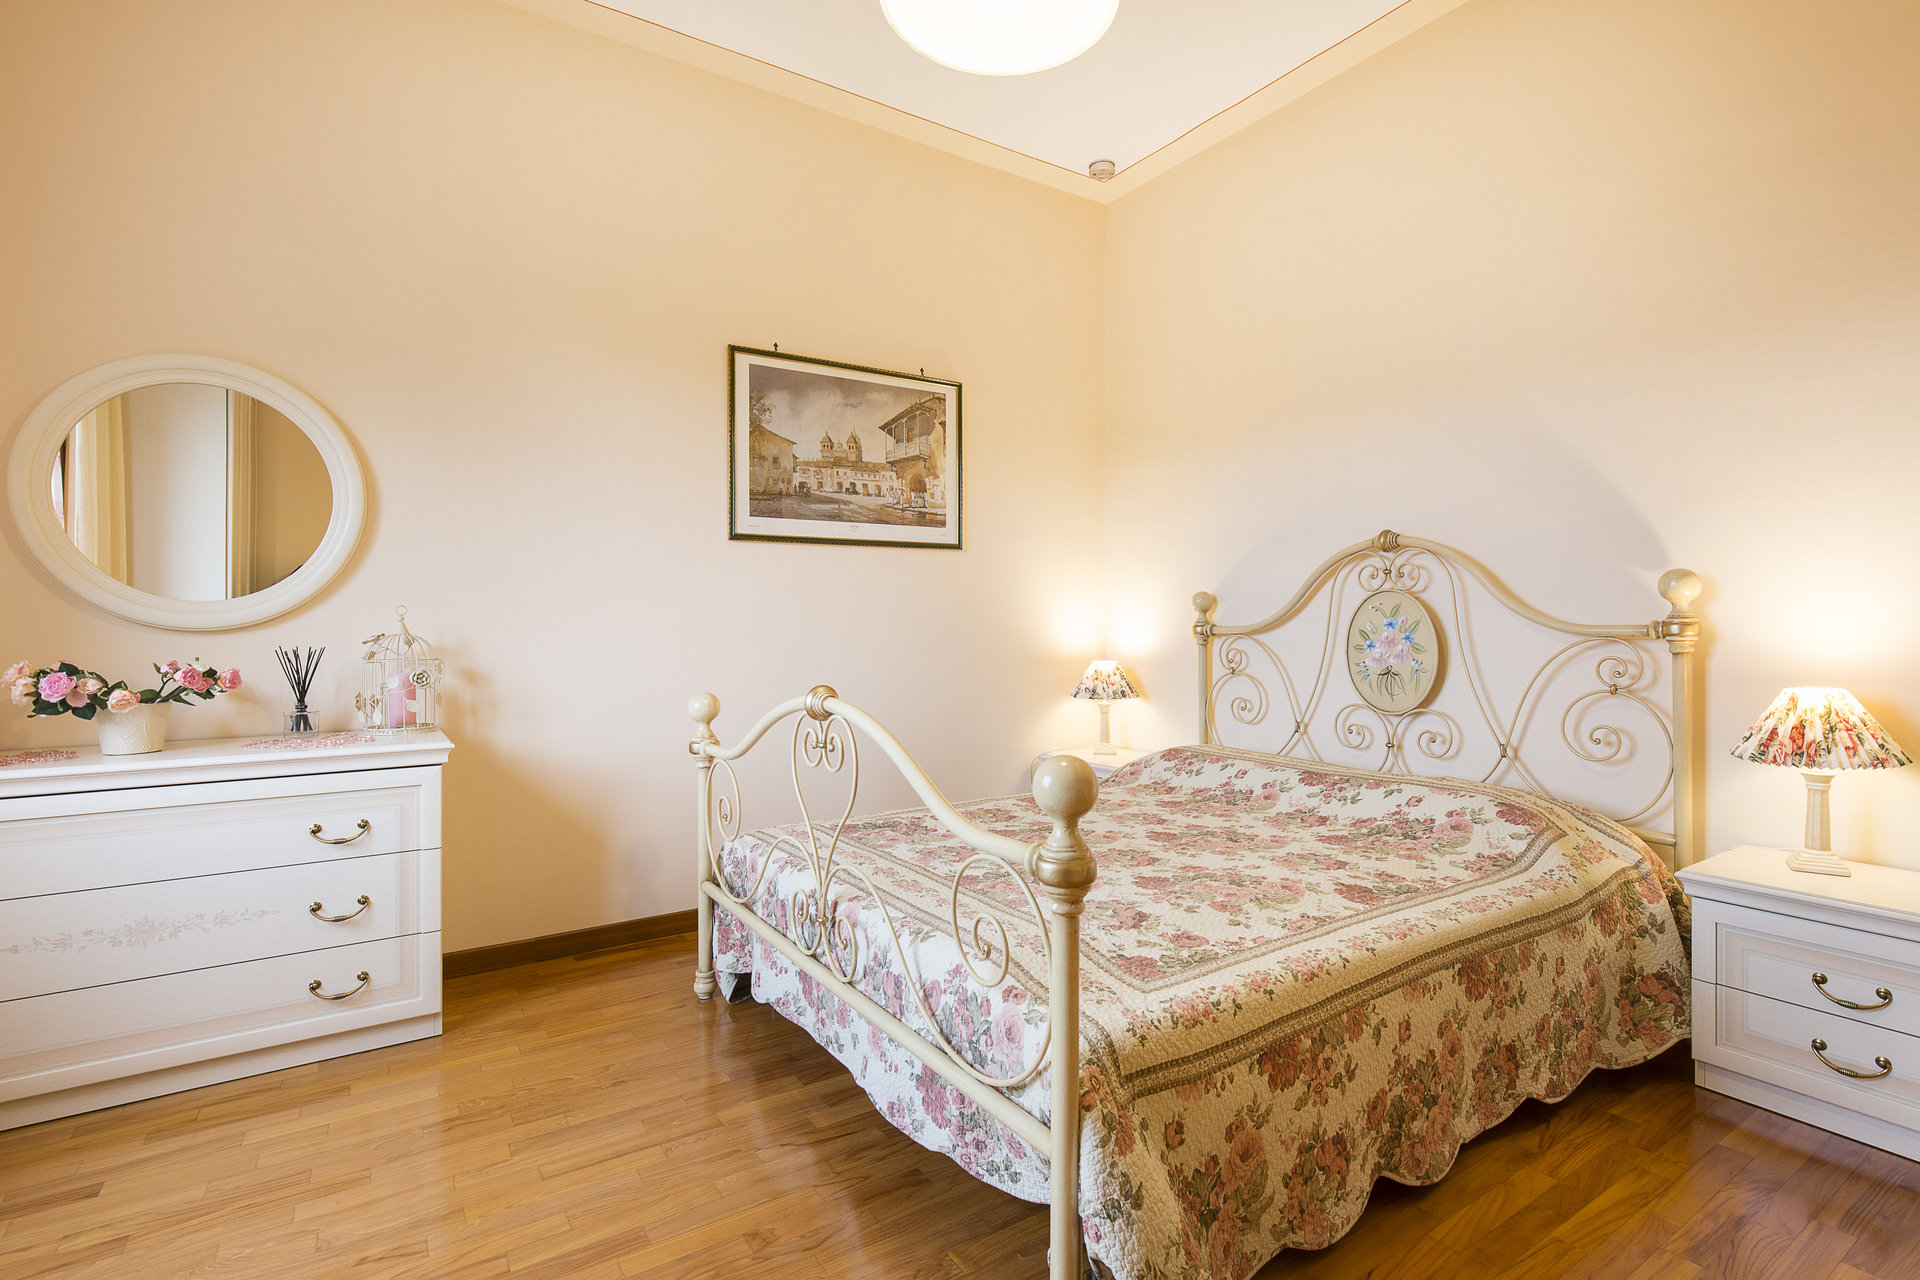 Villa for sale in Stresa with park and view on Borromean islands - bedroom